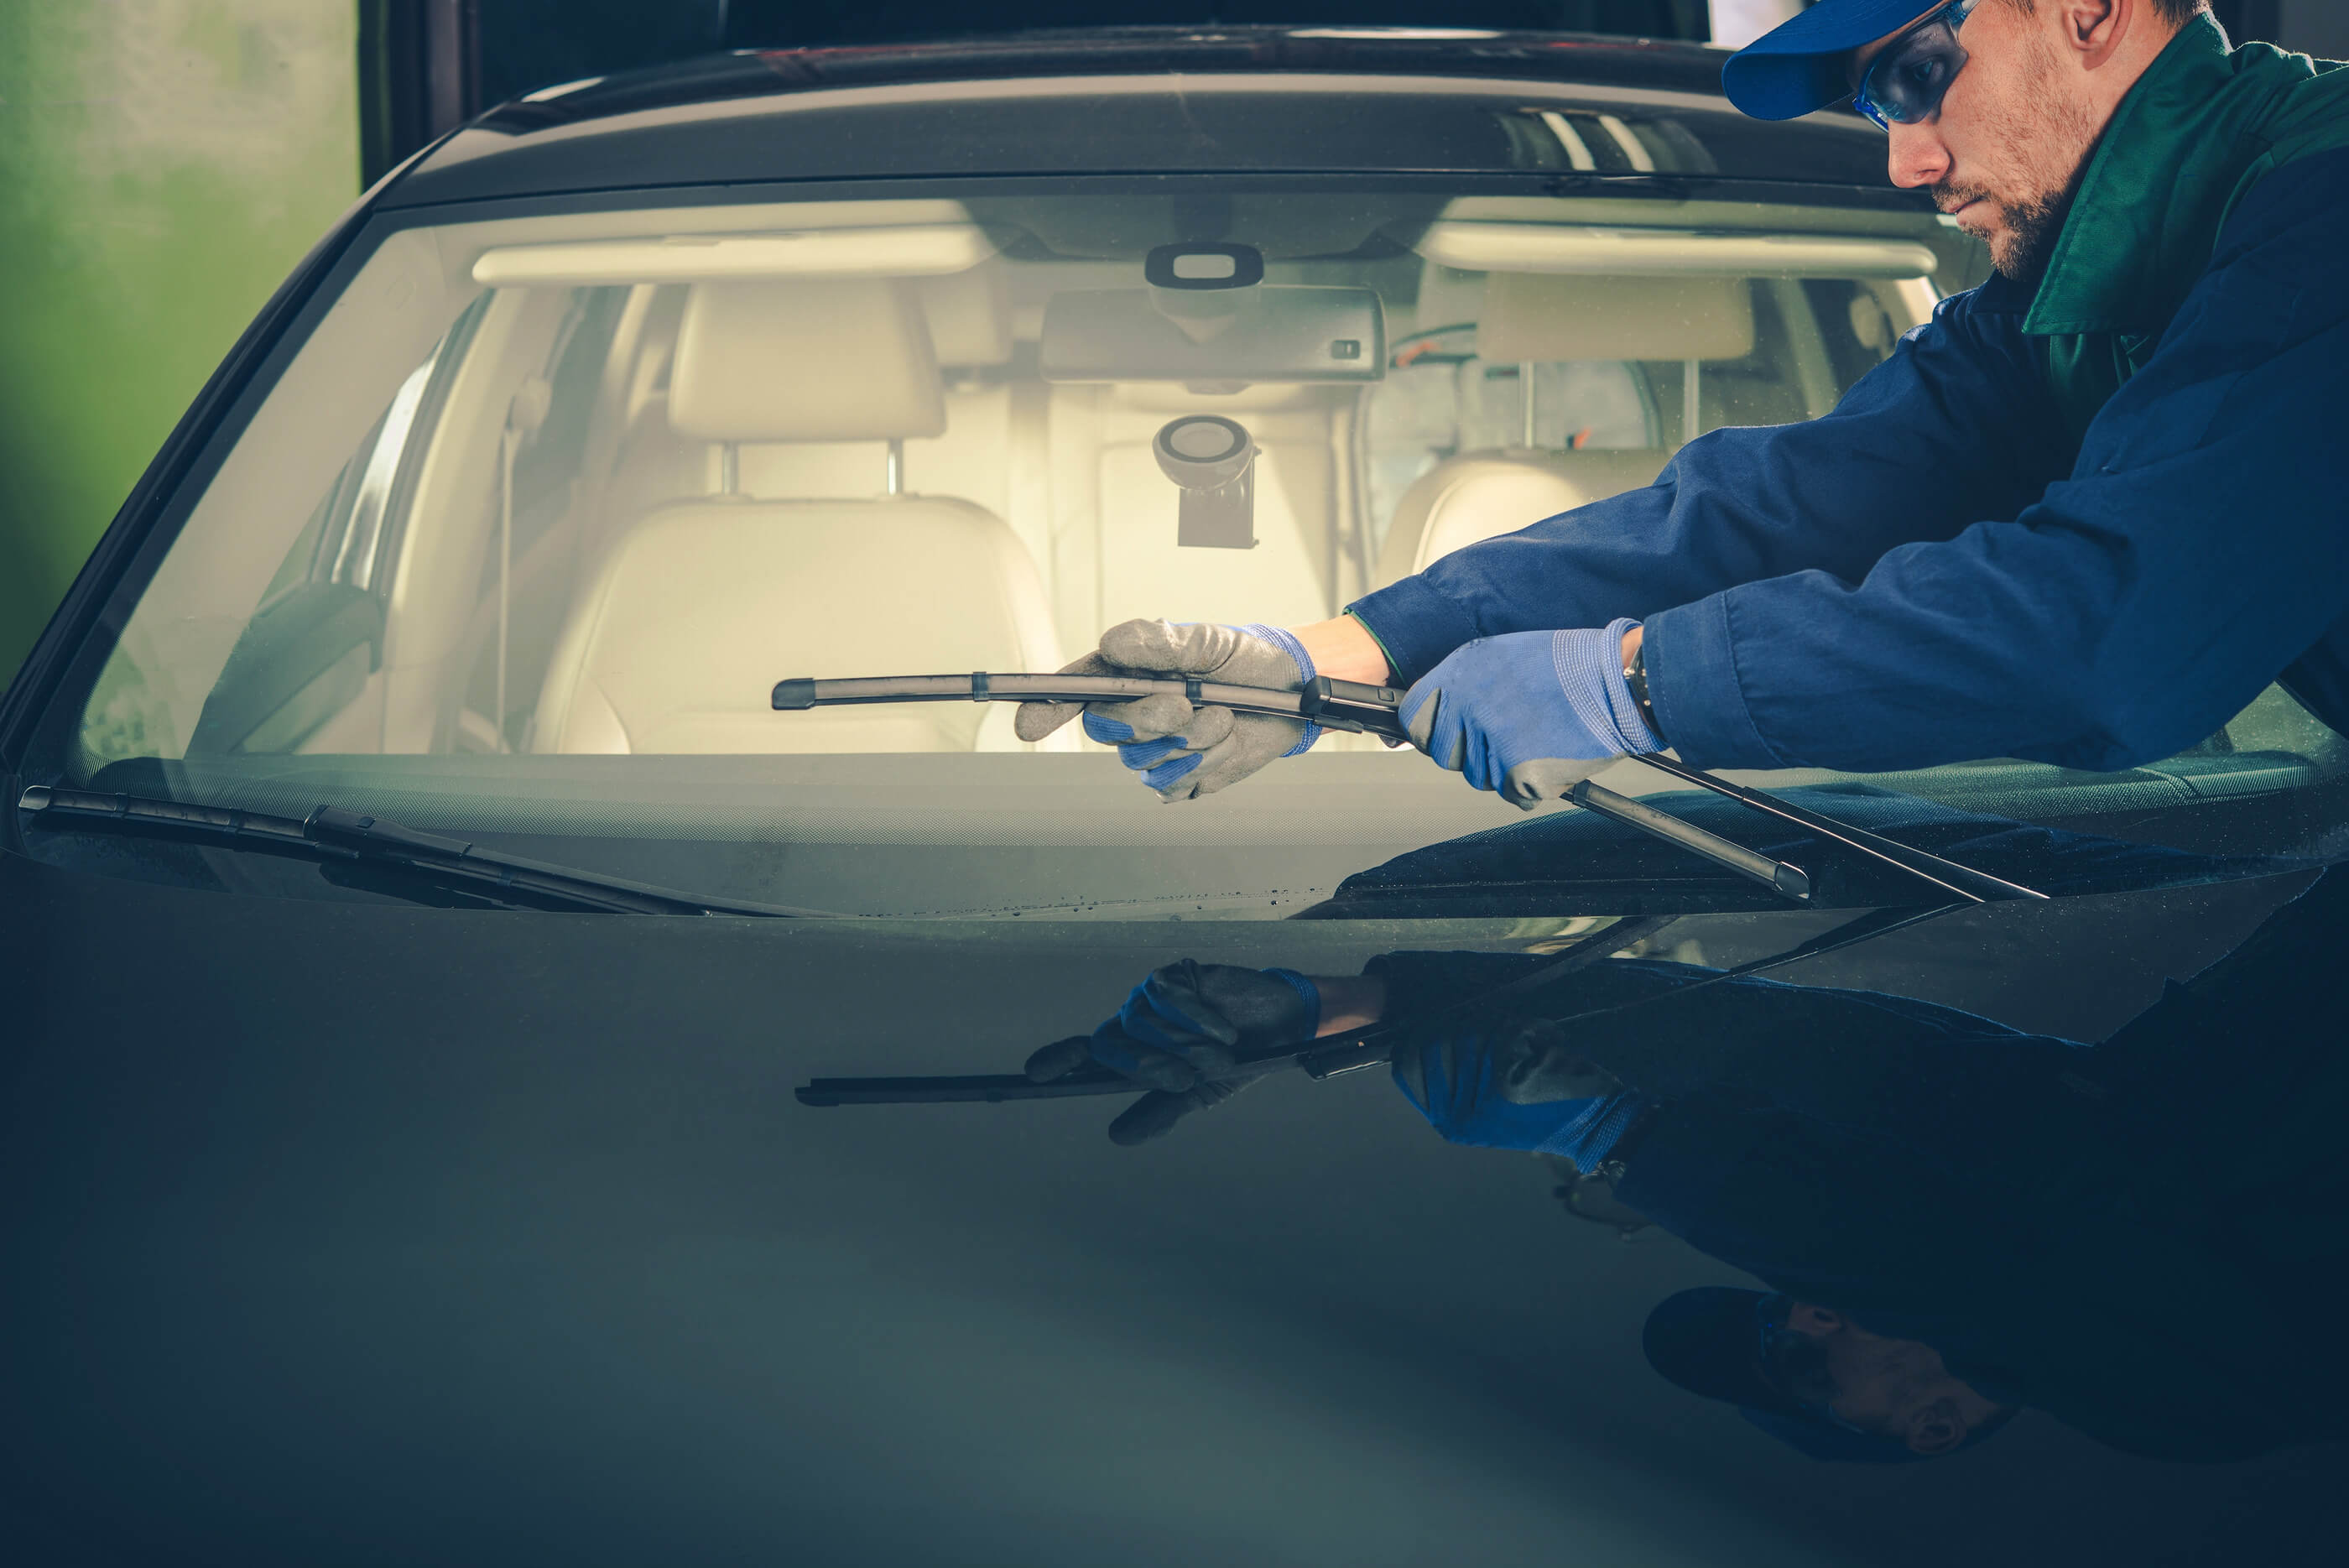 Seeing in the rain: How to check and replace car windscreen wipers